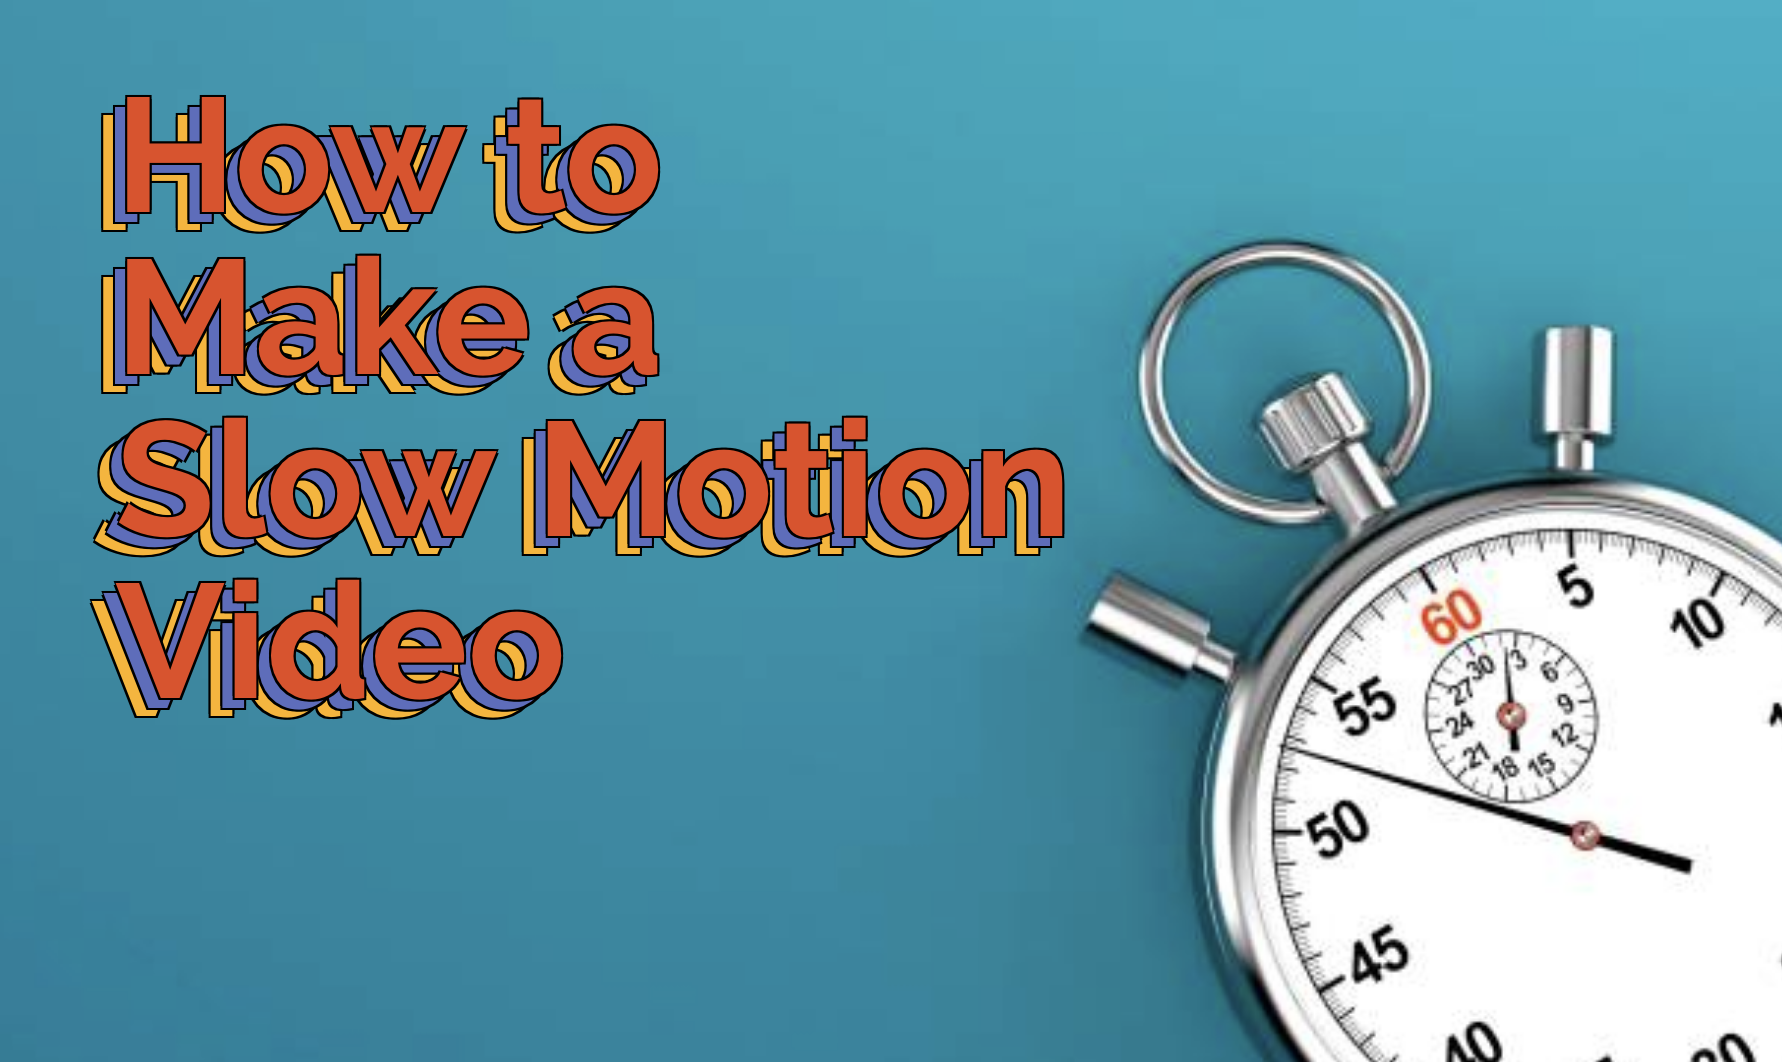 How to Make a Slow Motion Video